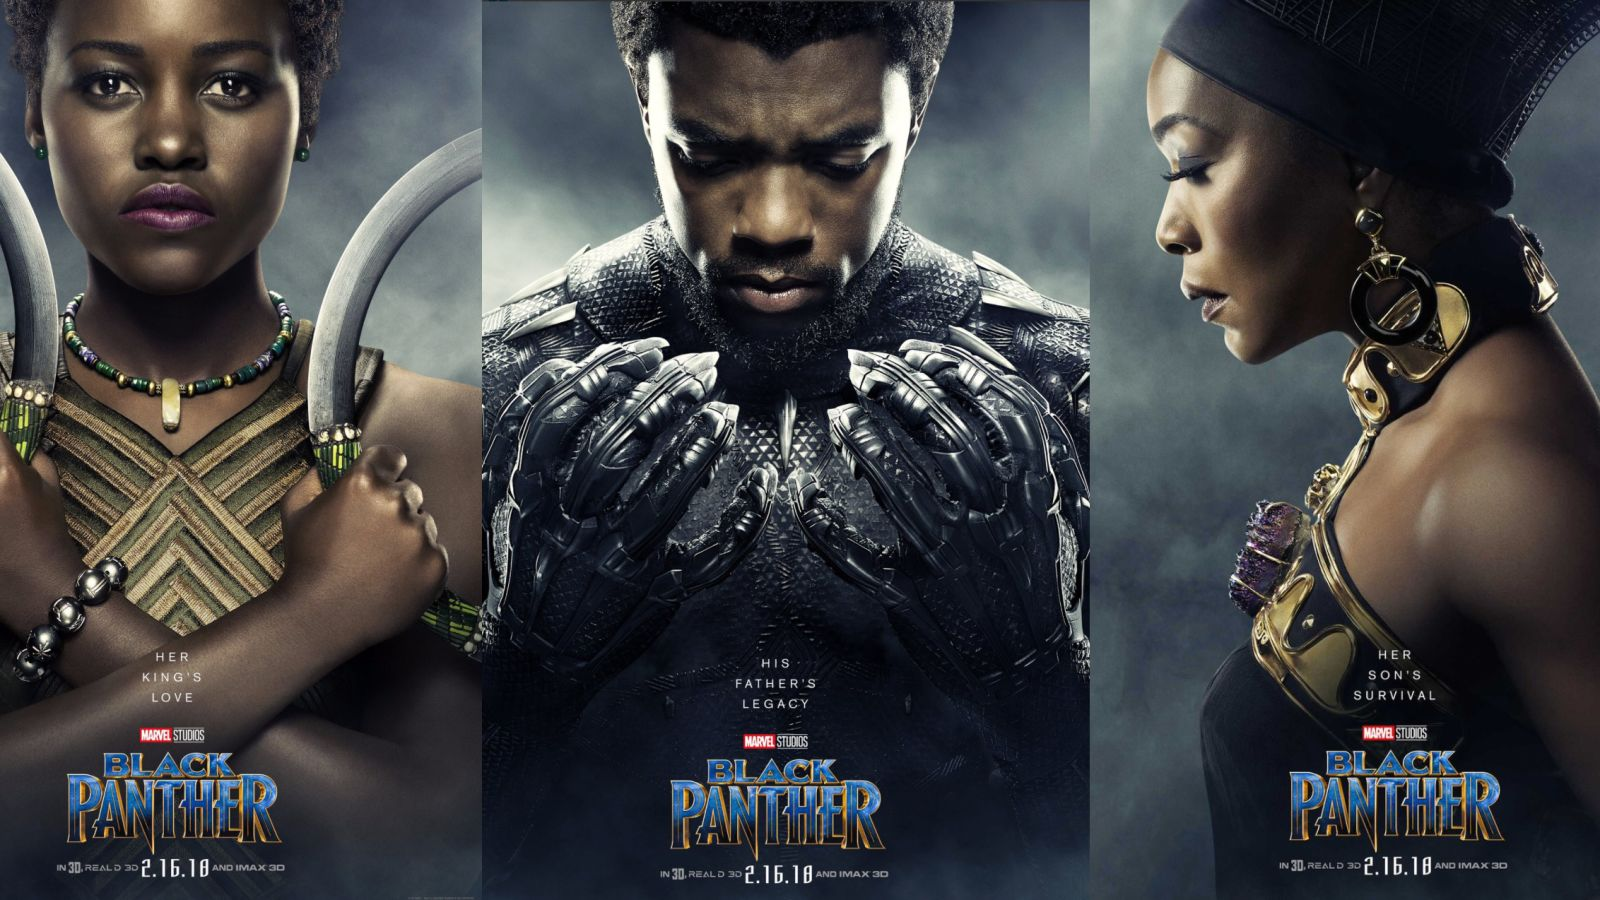 Black_Panther_Movie_Posters.jpg